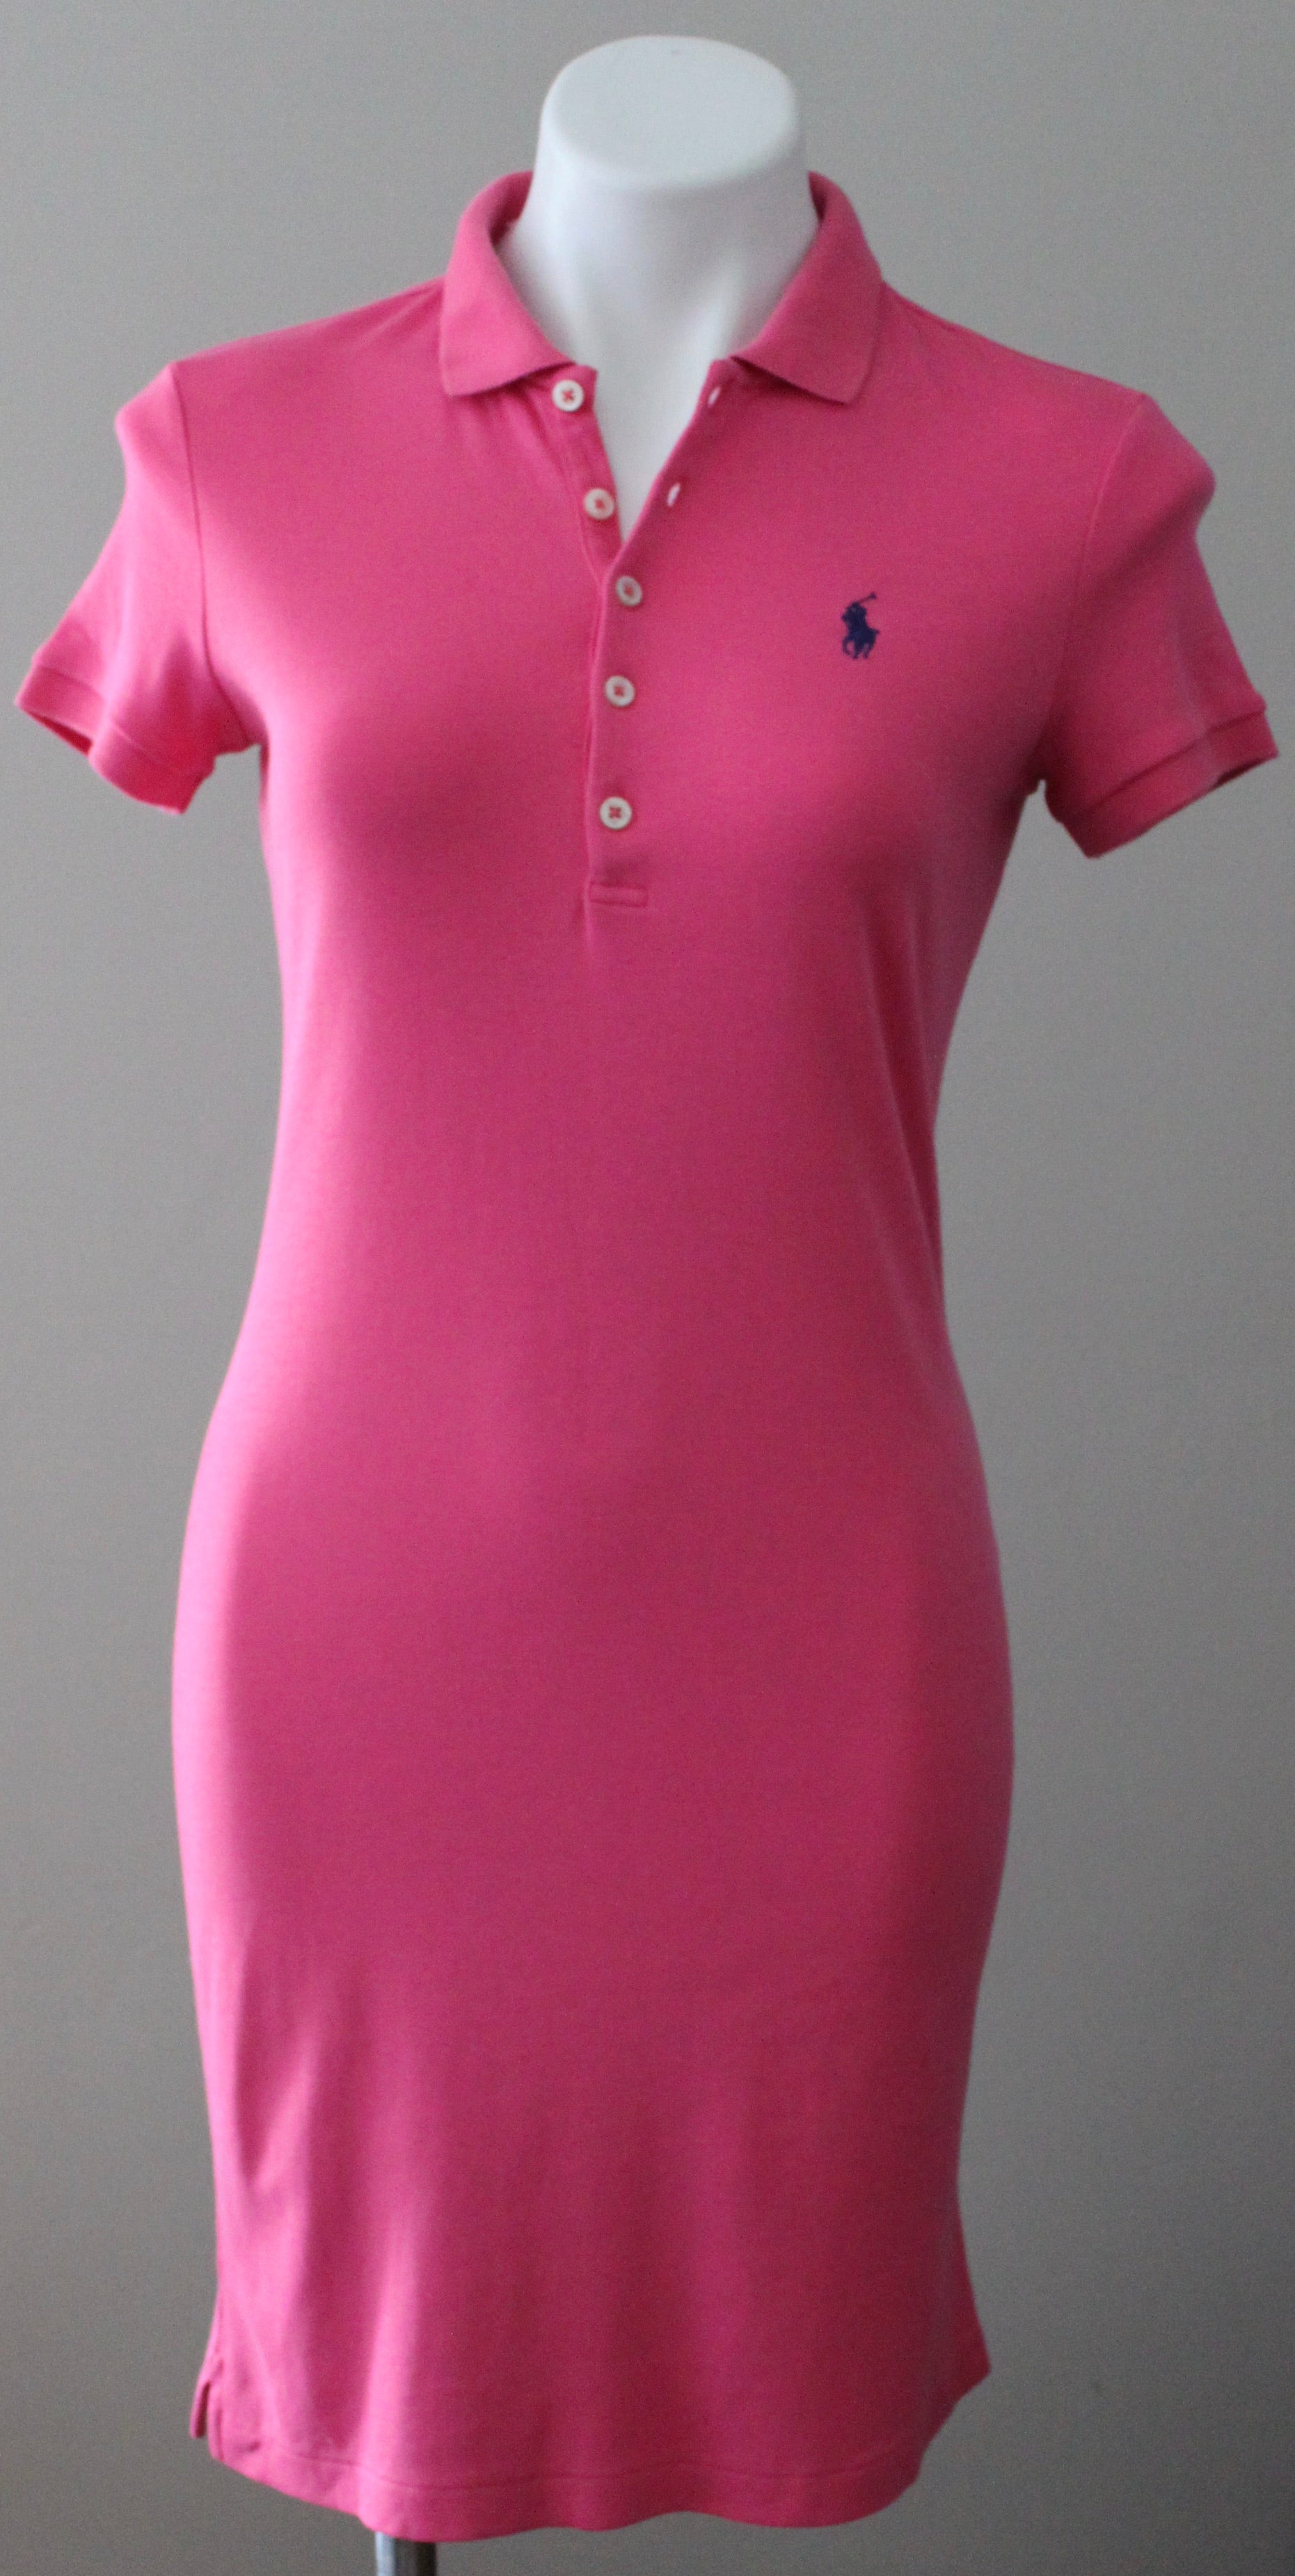 RALPH LAUREN Light Summer pink polo dress